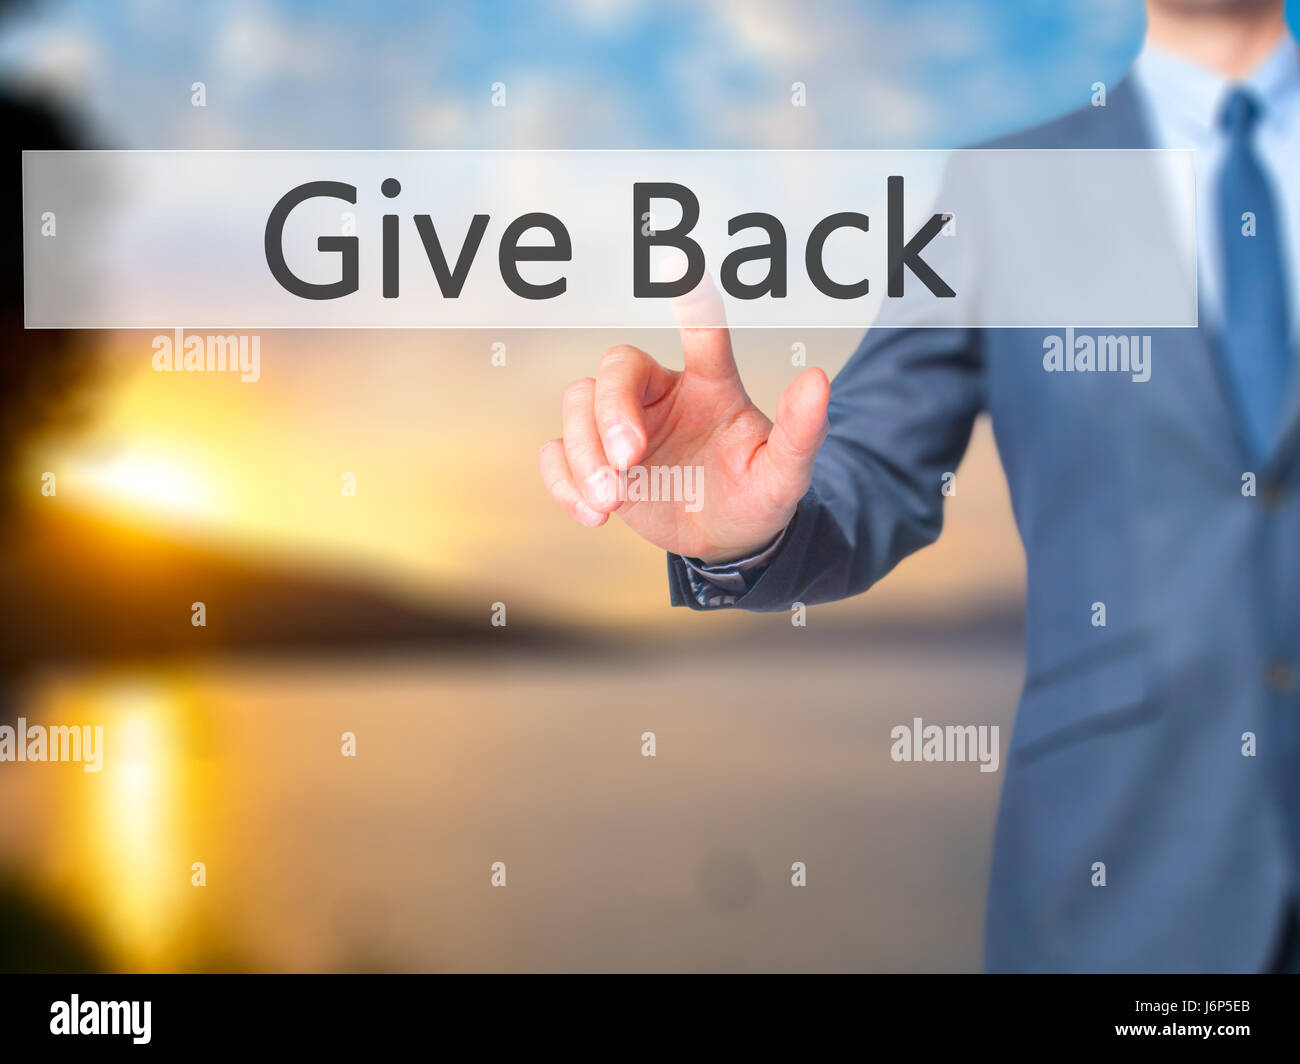 Give Back - Businessman hand pressing button on touch screen interface. Business, technology, internet concept. - Stock Image